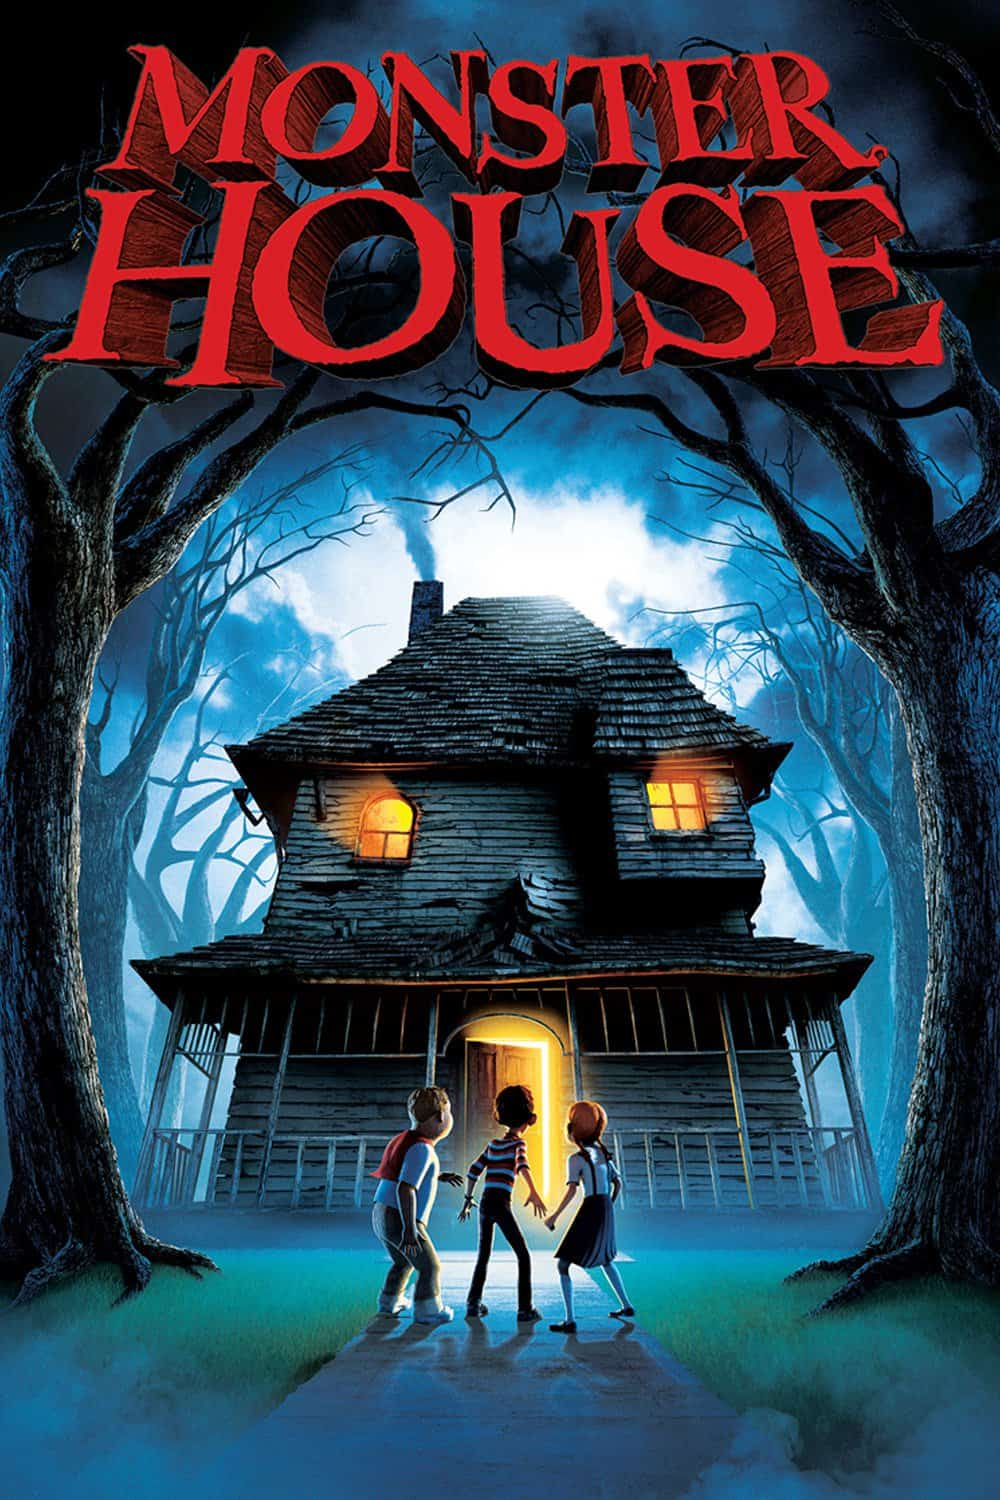 Monster House, 2006